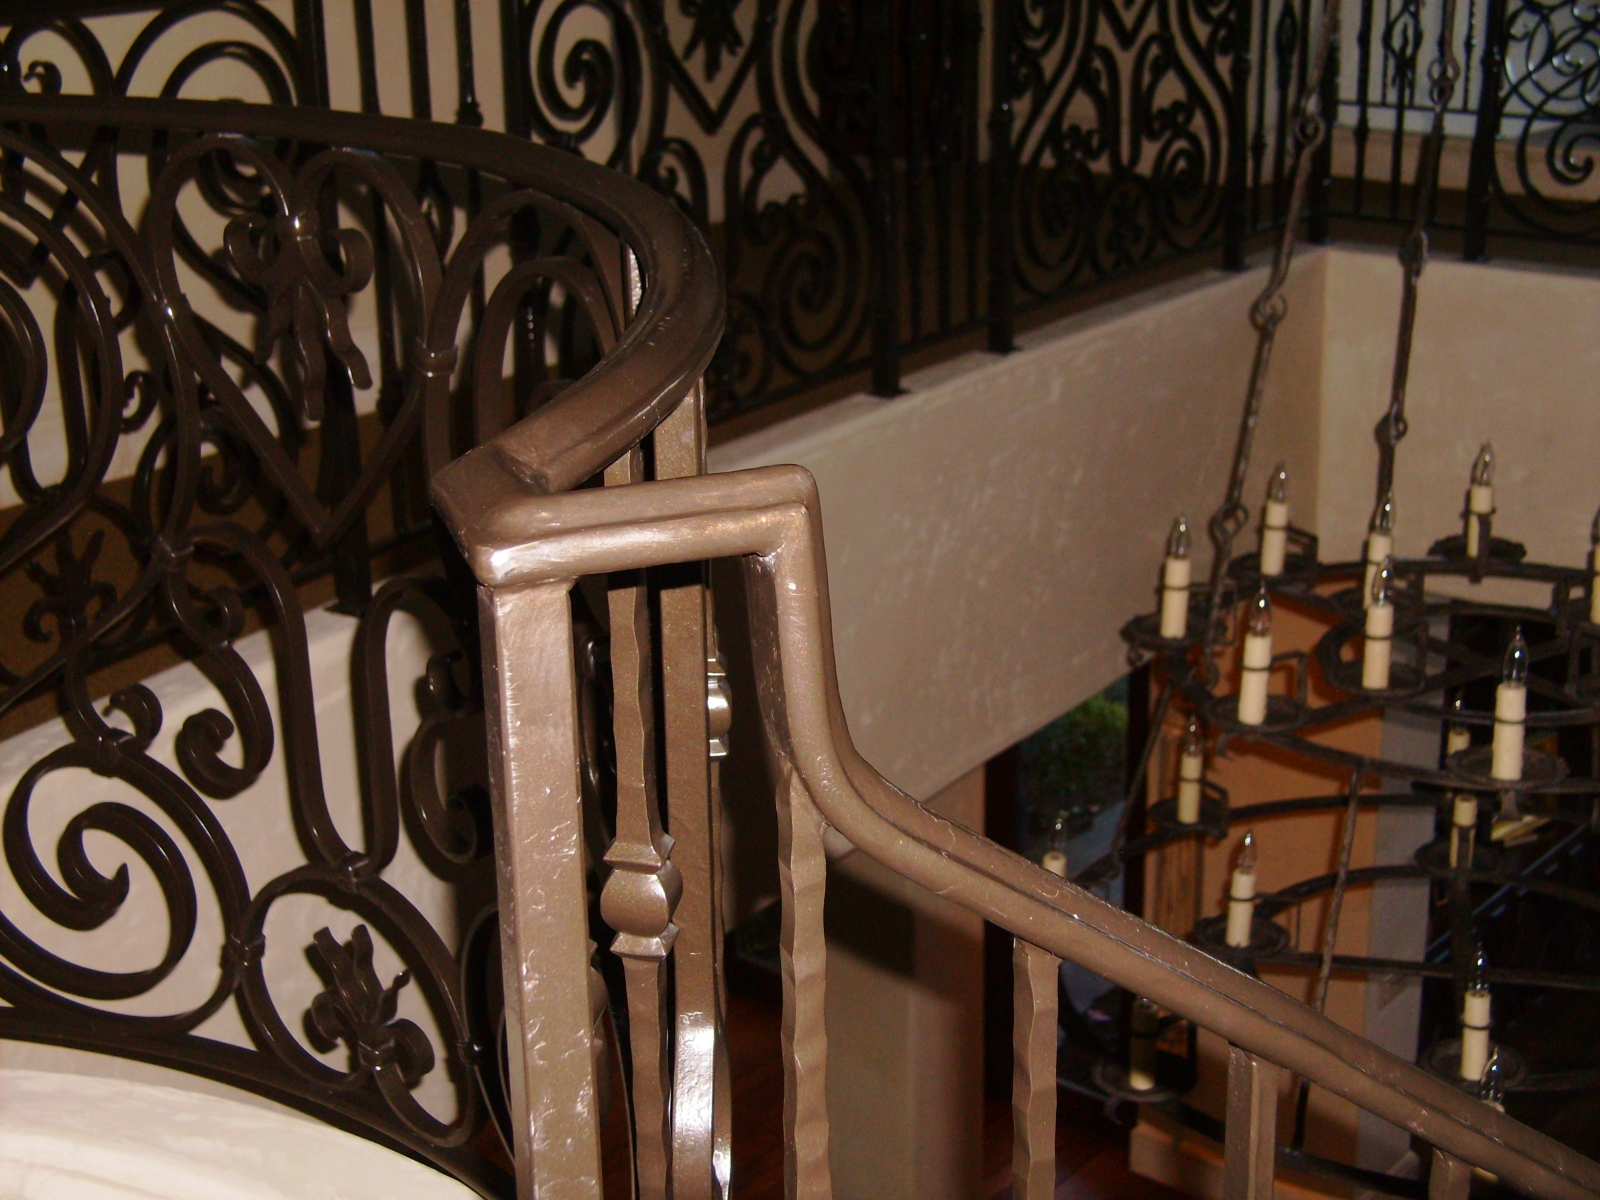 galleryrailings0022